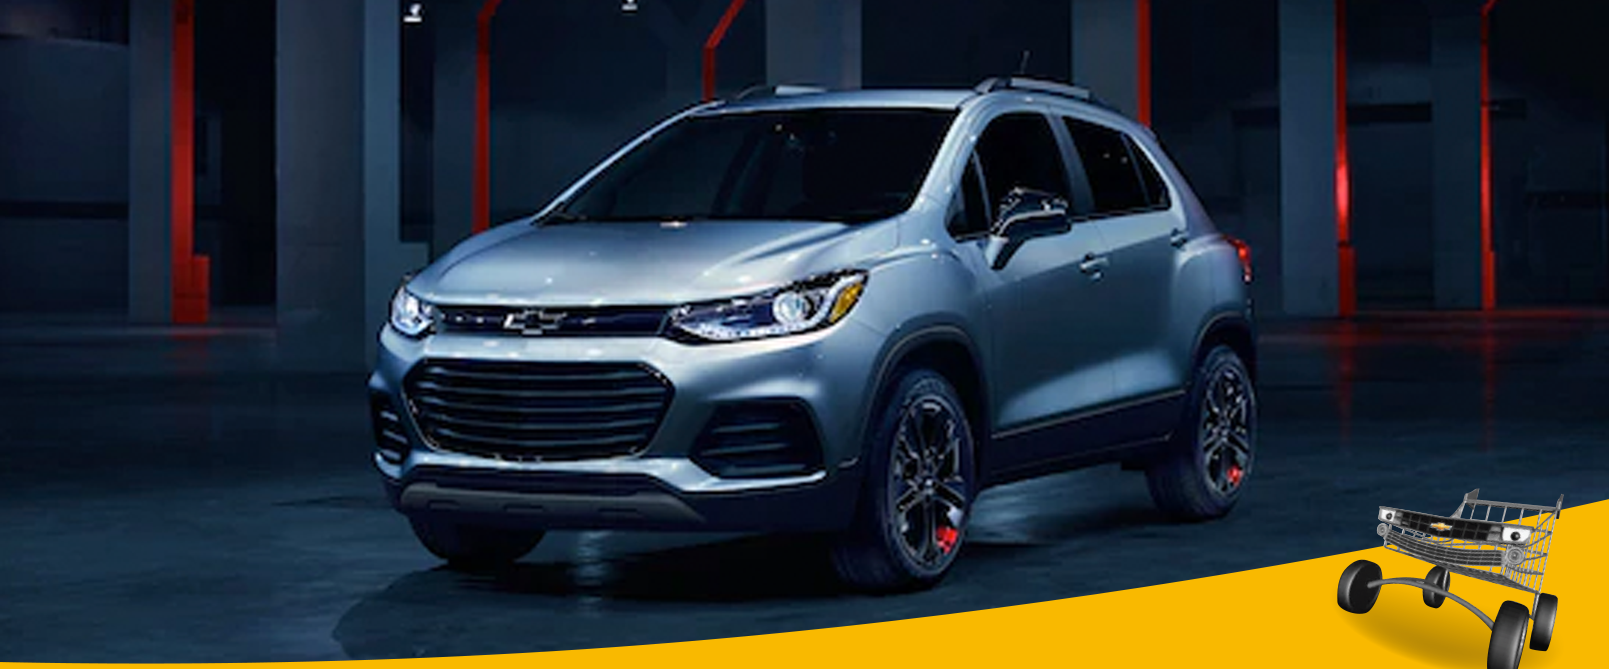 Flossmoor IL 2020 Chevy Trax SUV Dealership